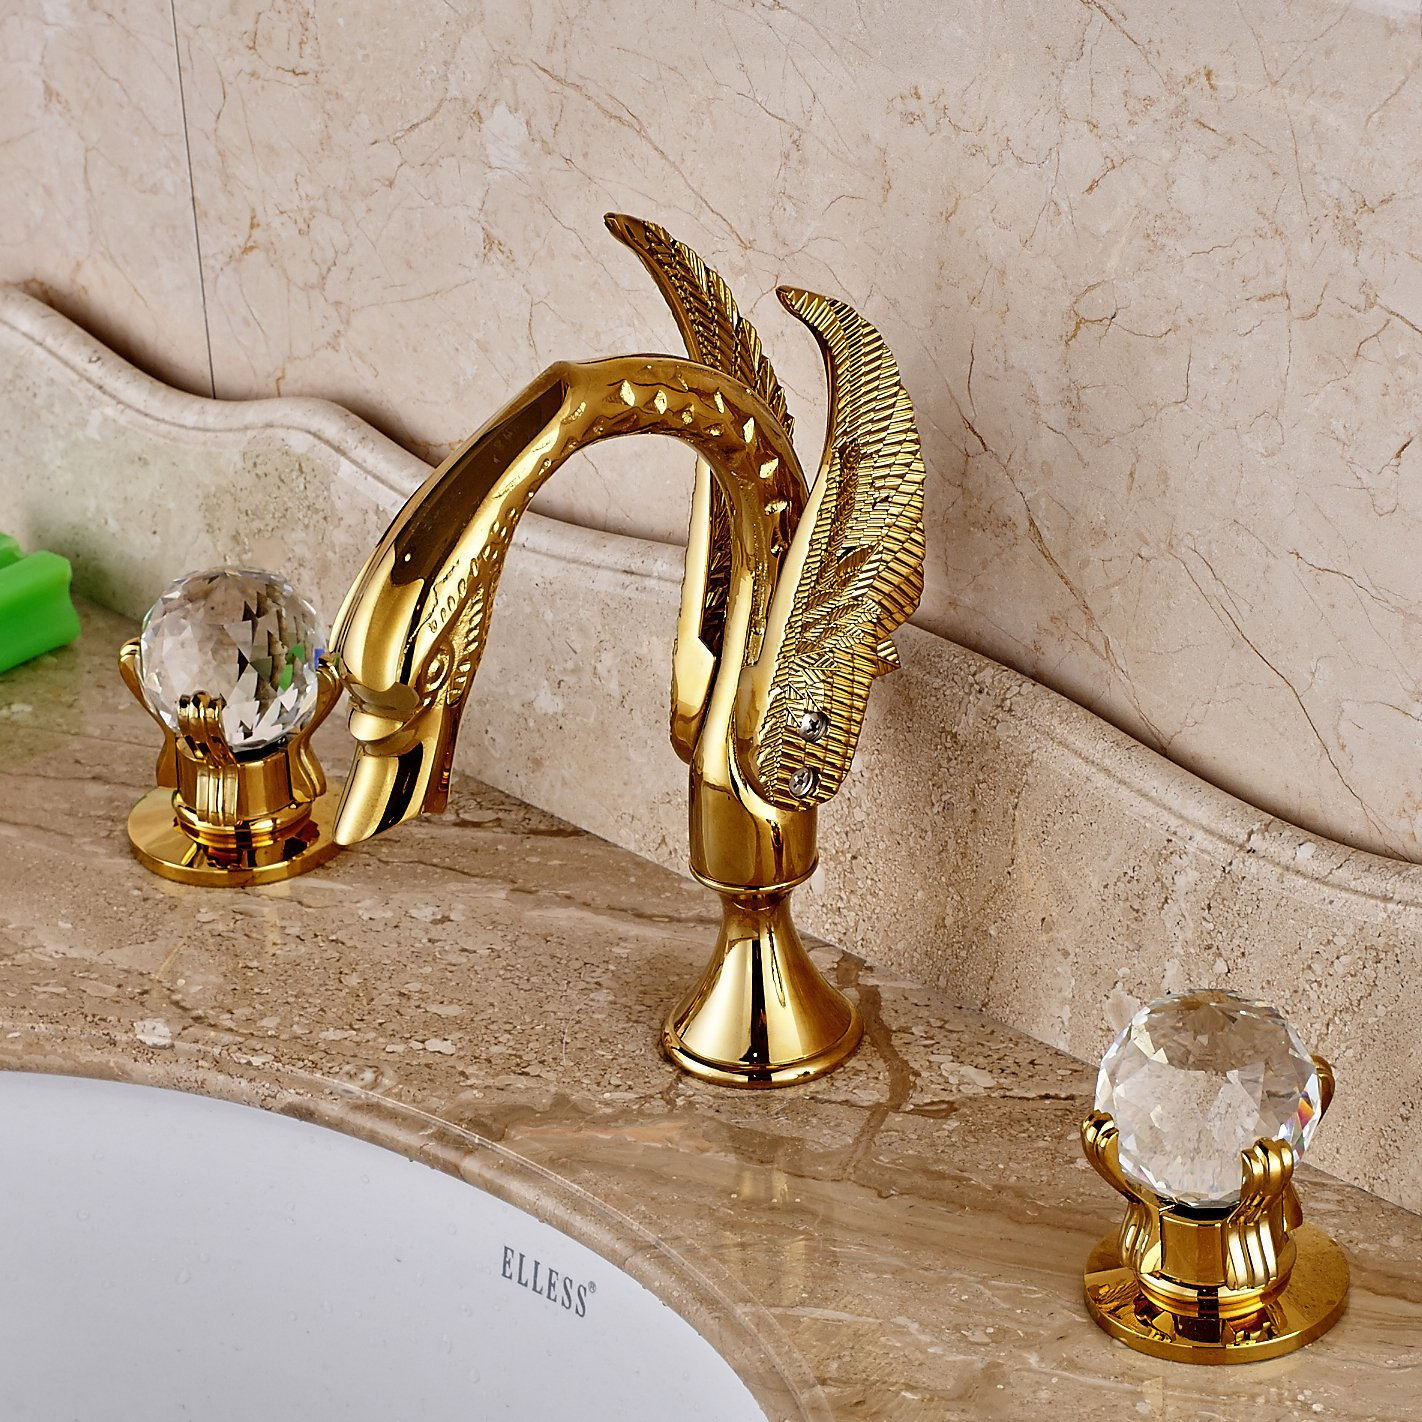 Rozin Double Crystal Knobs Basin Faucet Widepspread 3 Holes Sink Mixer Tap Gold Finish